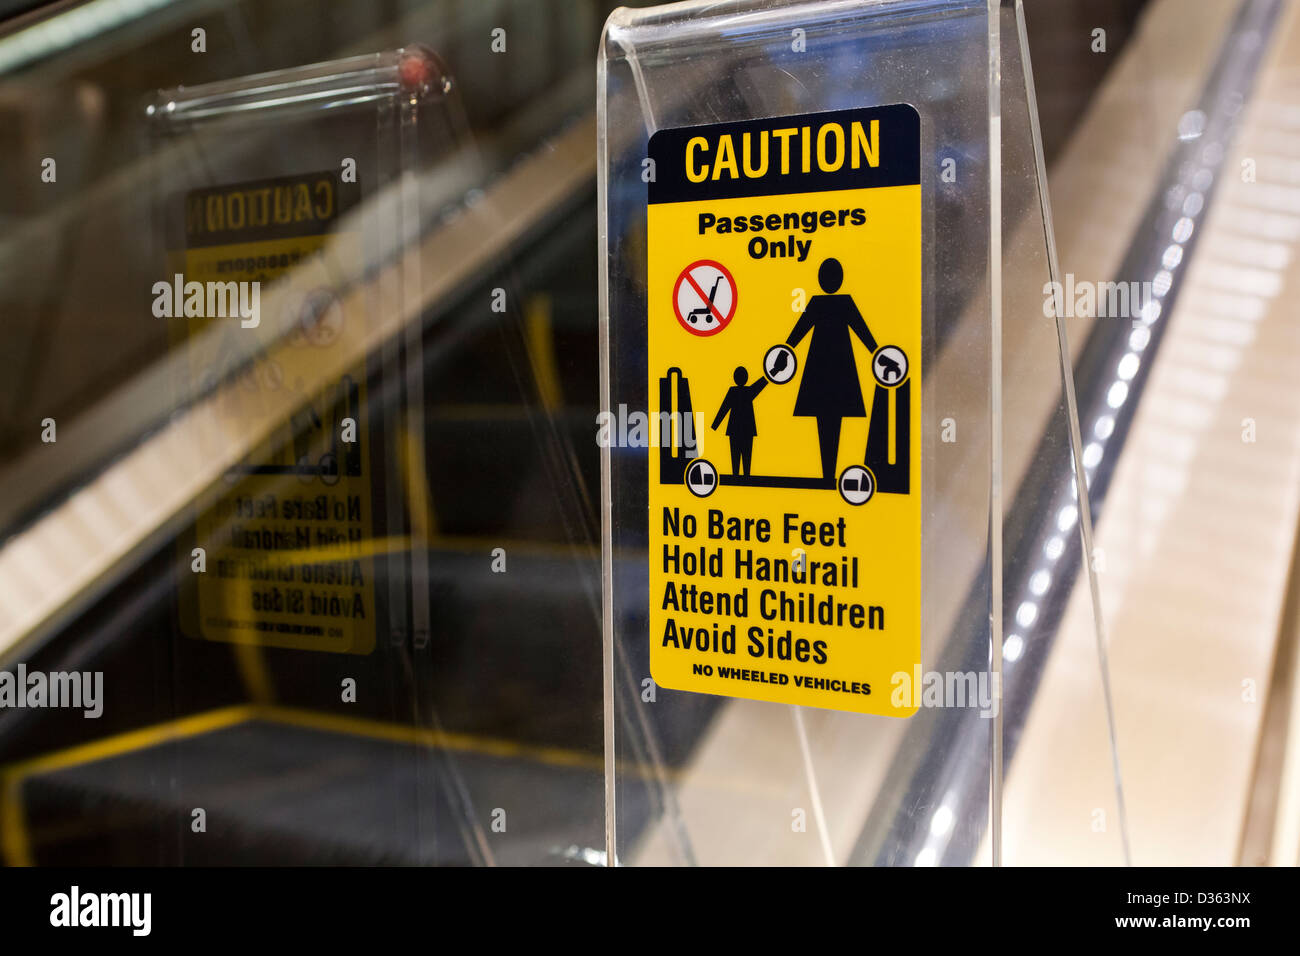 Escalator safety label - Stock Image